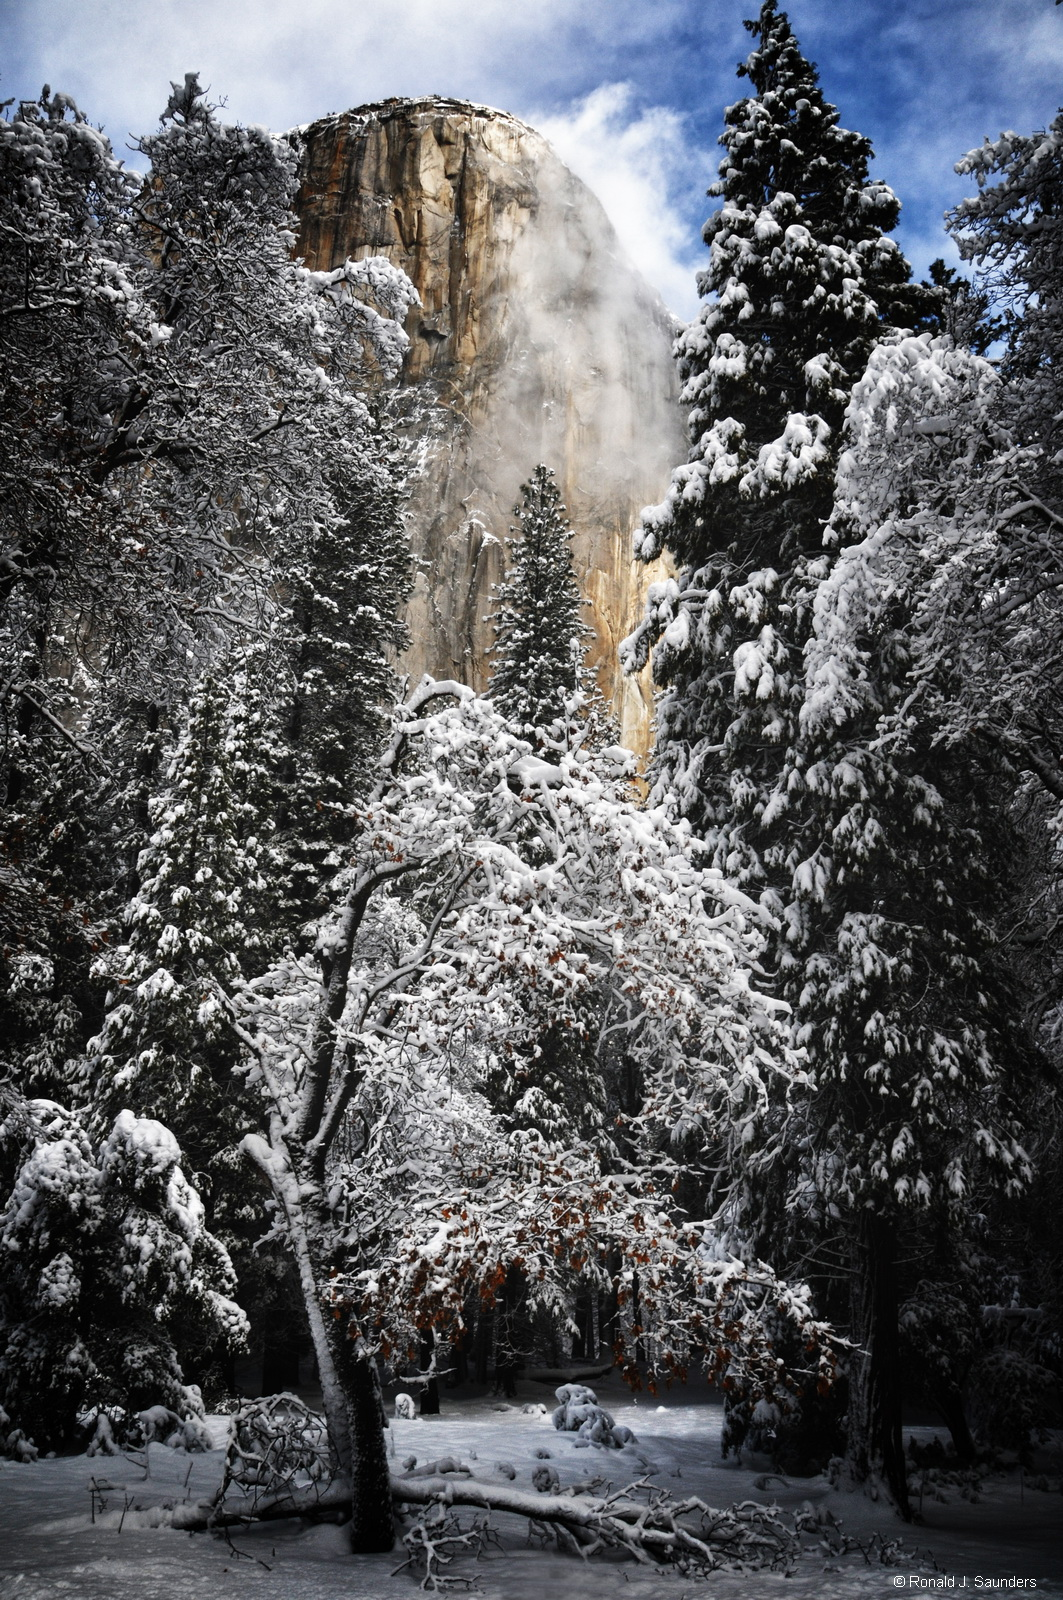 yosemite, el capitan, tree, snow, winter, ronald, saunders, ron,color, photo